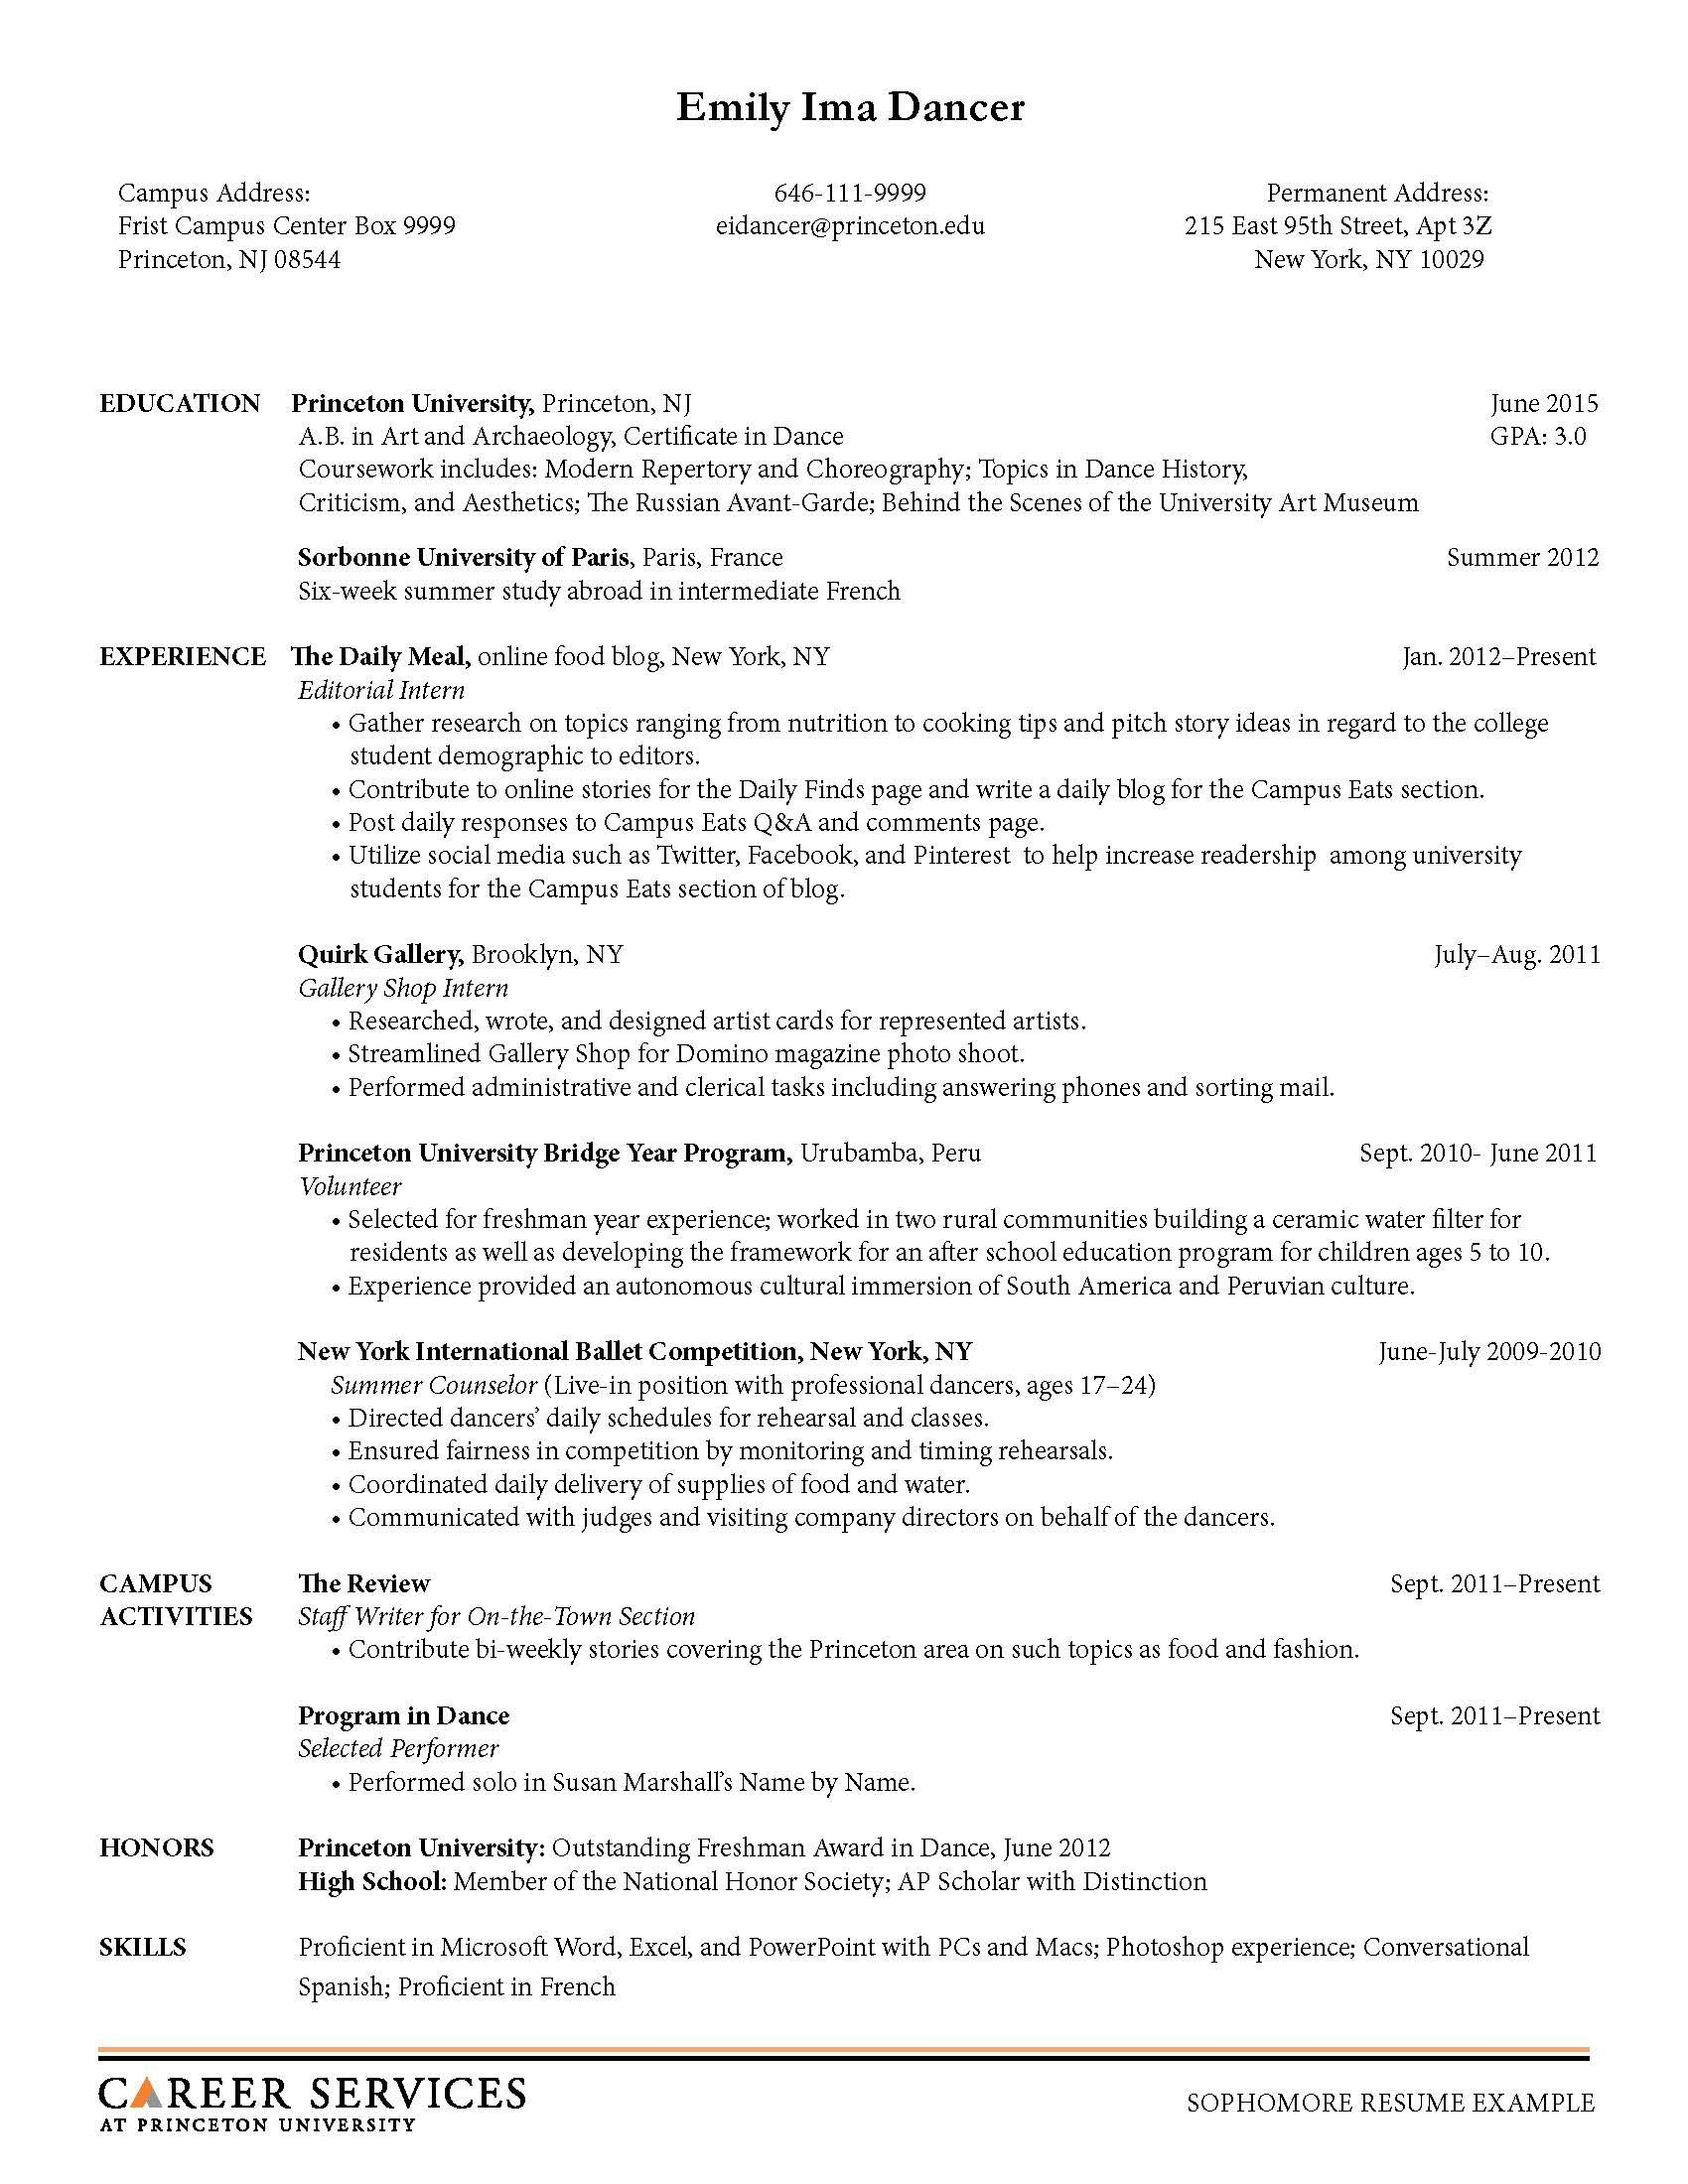 Opposenewapstandardsus  Pleasing Sample Resume Resume And Career On Pinterest With Hot Sample Customer Service Resumes Besides It Administrator Resume Furthermore Headshot And Resume With Delectable Tester Resume Also Building A Professional Resume In Addition How To Write A Good Cover Letter For A Resume And Functional Skills Resume As Well As Organization Skills On Resume Additionally Resume Template For High School Graduate From Pinterestcom With Opposenewapstandardsus  Hot Sample Resume Resume And Career On Pinterest With Delectable Sample Customer Service Resumes Besides It Administrator Resume Furthermore Headshot And Resume And Pleasing Tester Resume Also Building A Professional Resume In Addition How To Write A Good Cover Letter For A Resume From Pinterestcom